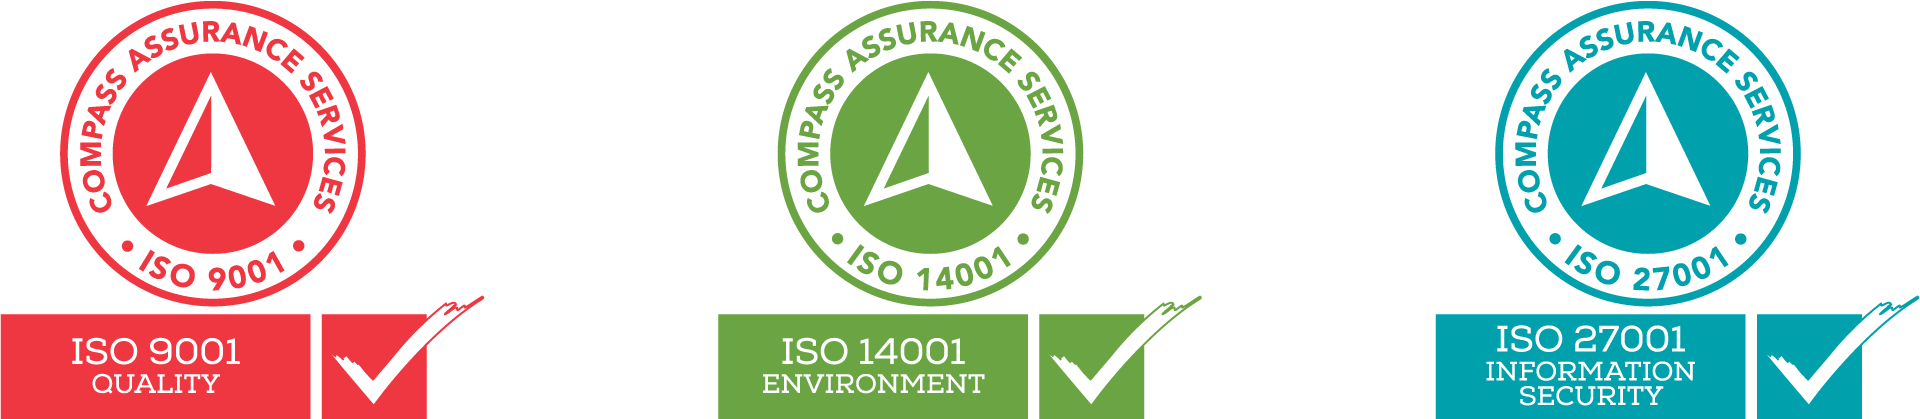 ISO Certifiication 9001 Quality, 14001 Envornment, 27001 Security